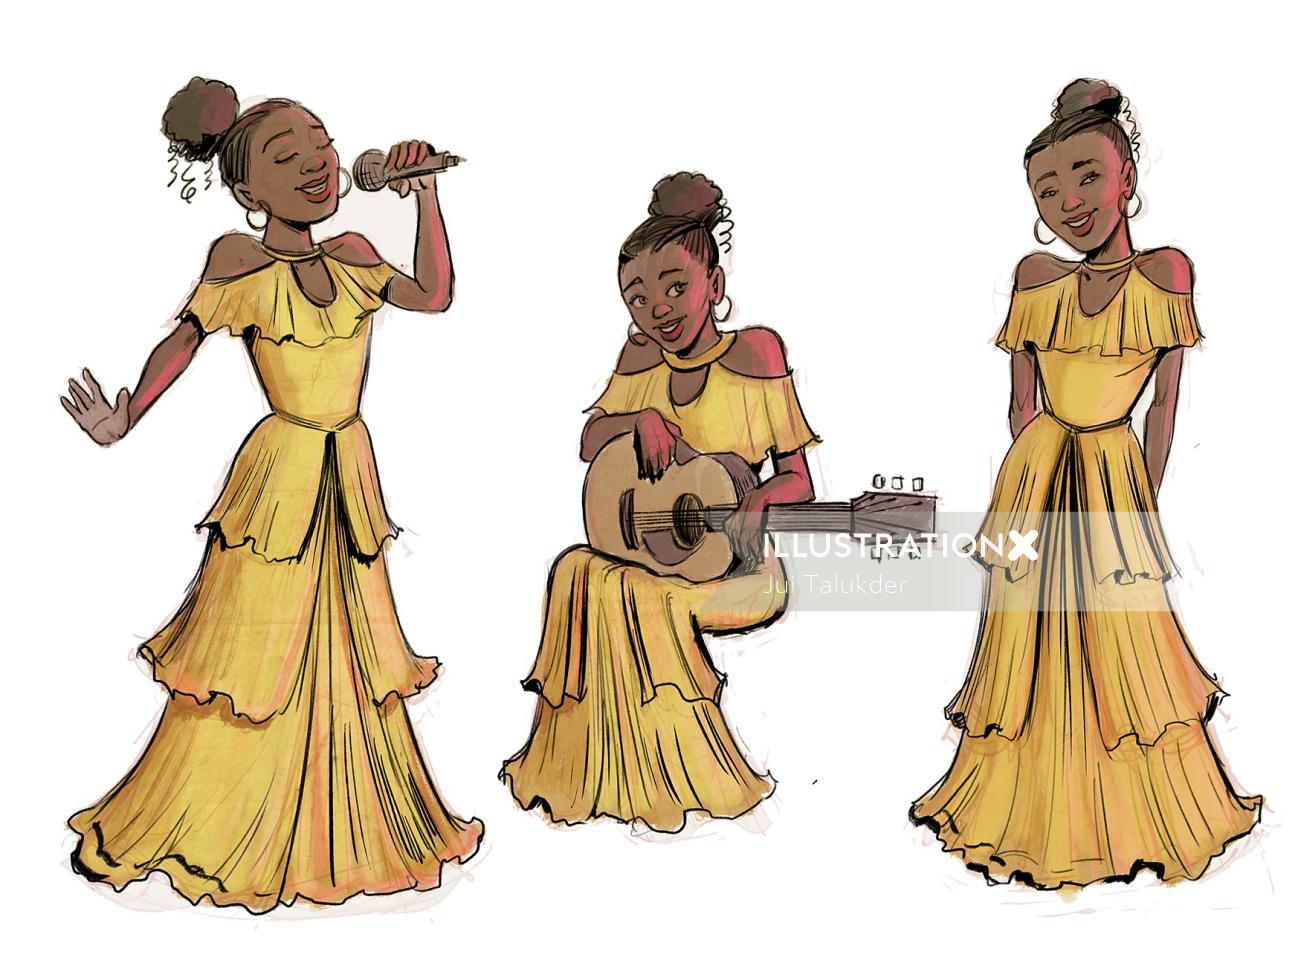 Abstract illustration of a girl playing Guitar and singing